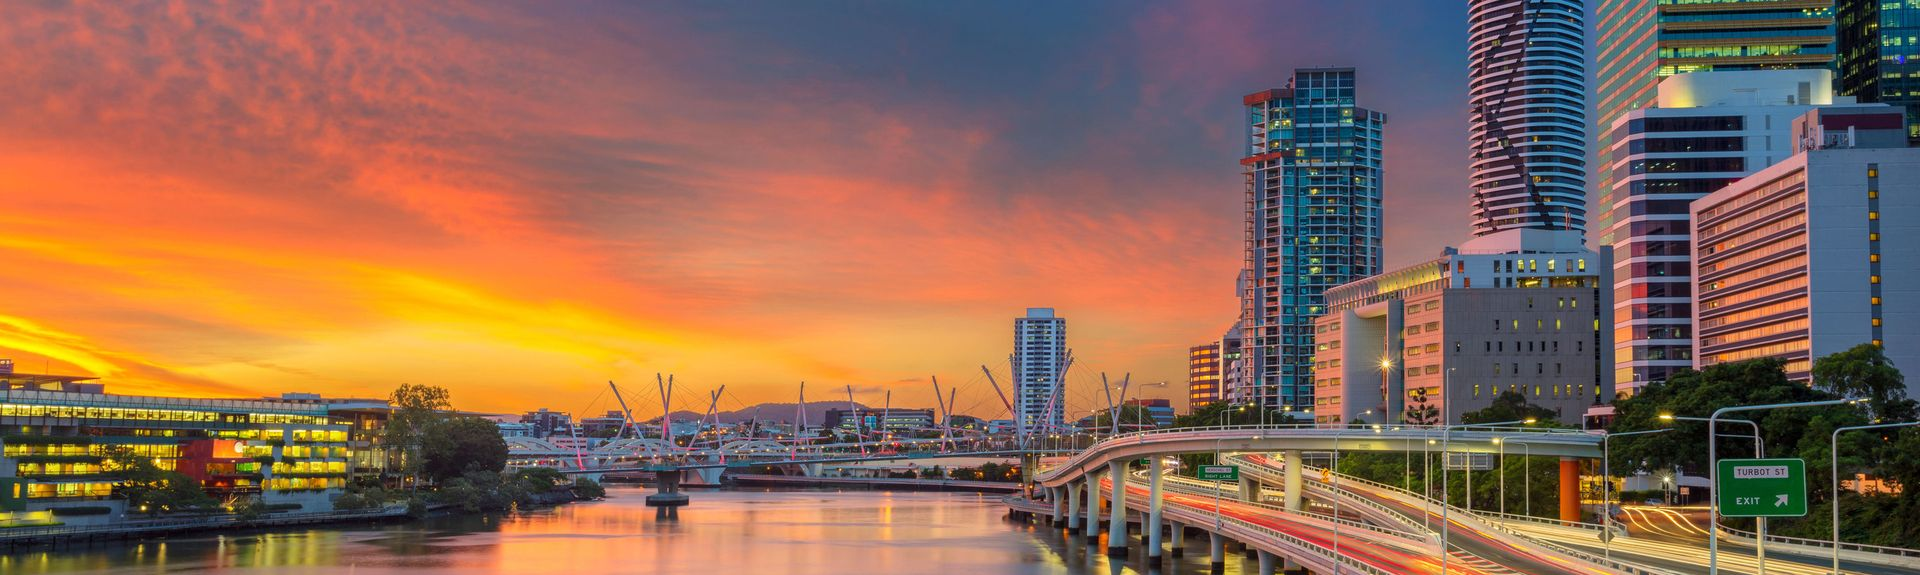 Brisbane City, Queensland, Australië